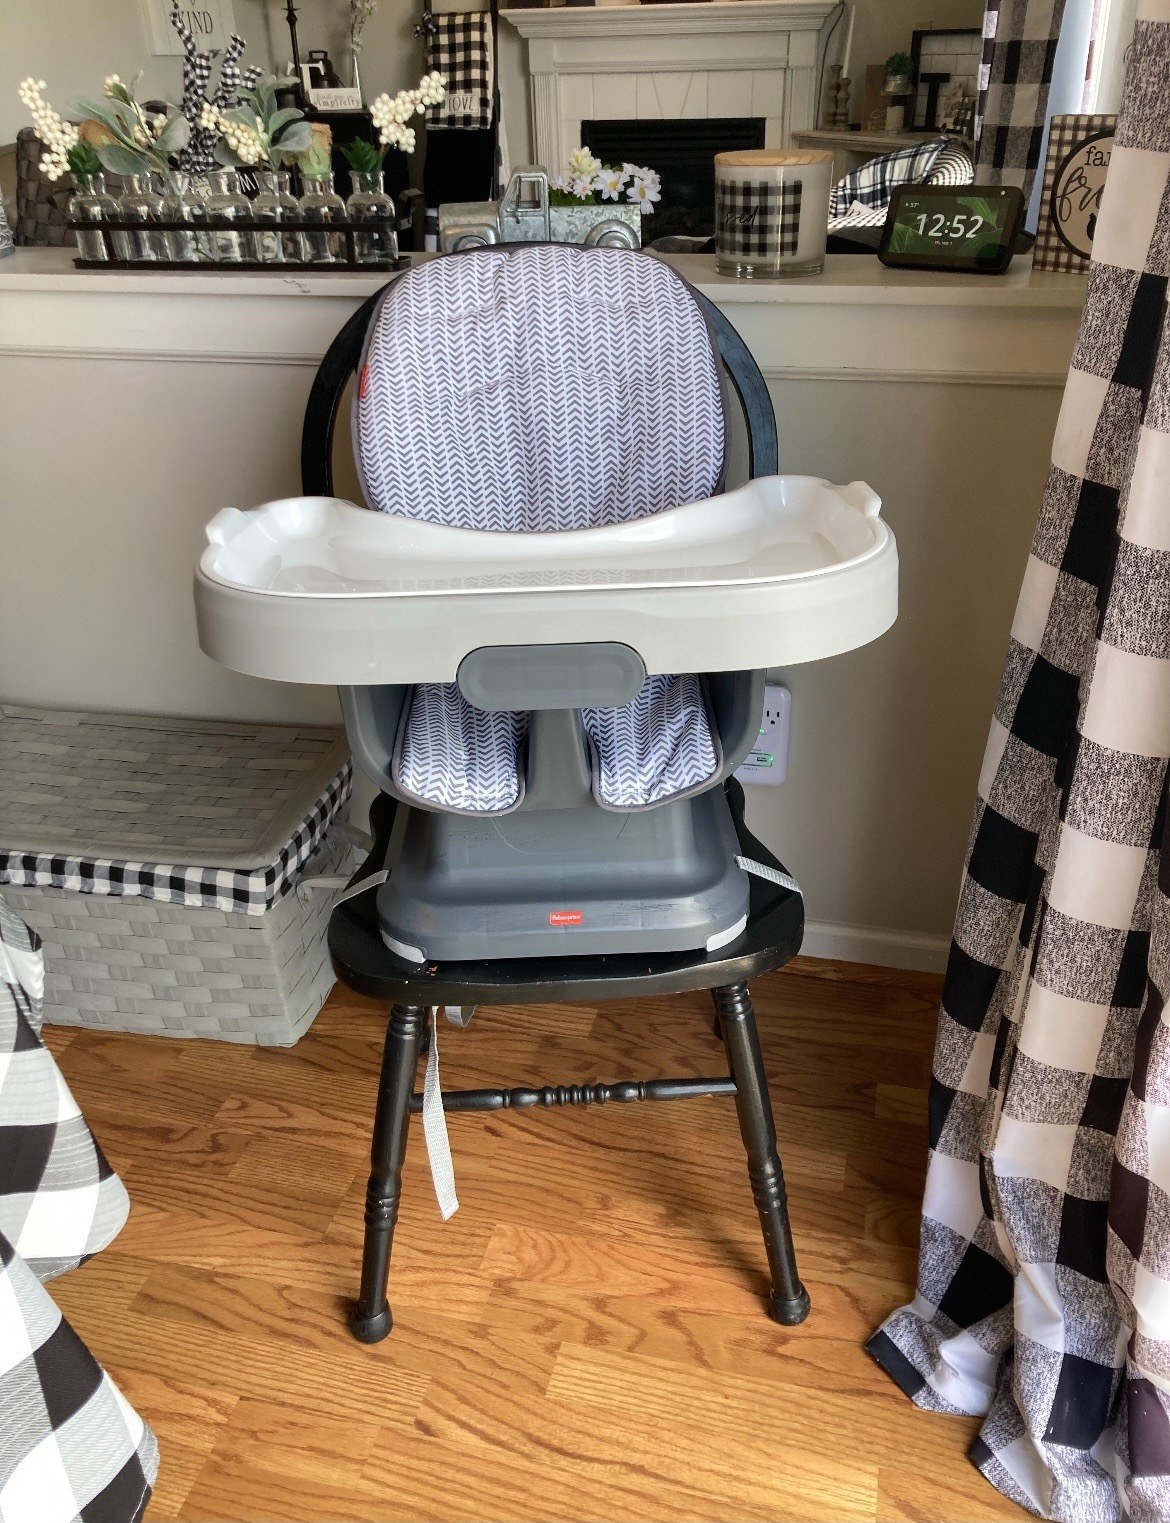 The high chair with a tray fastened to a dining chair